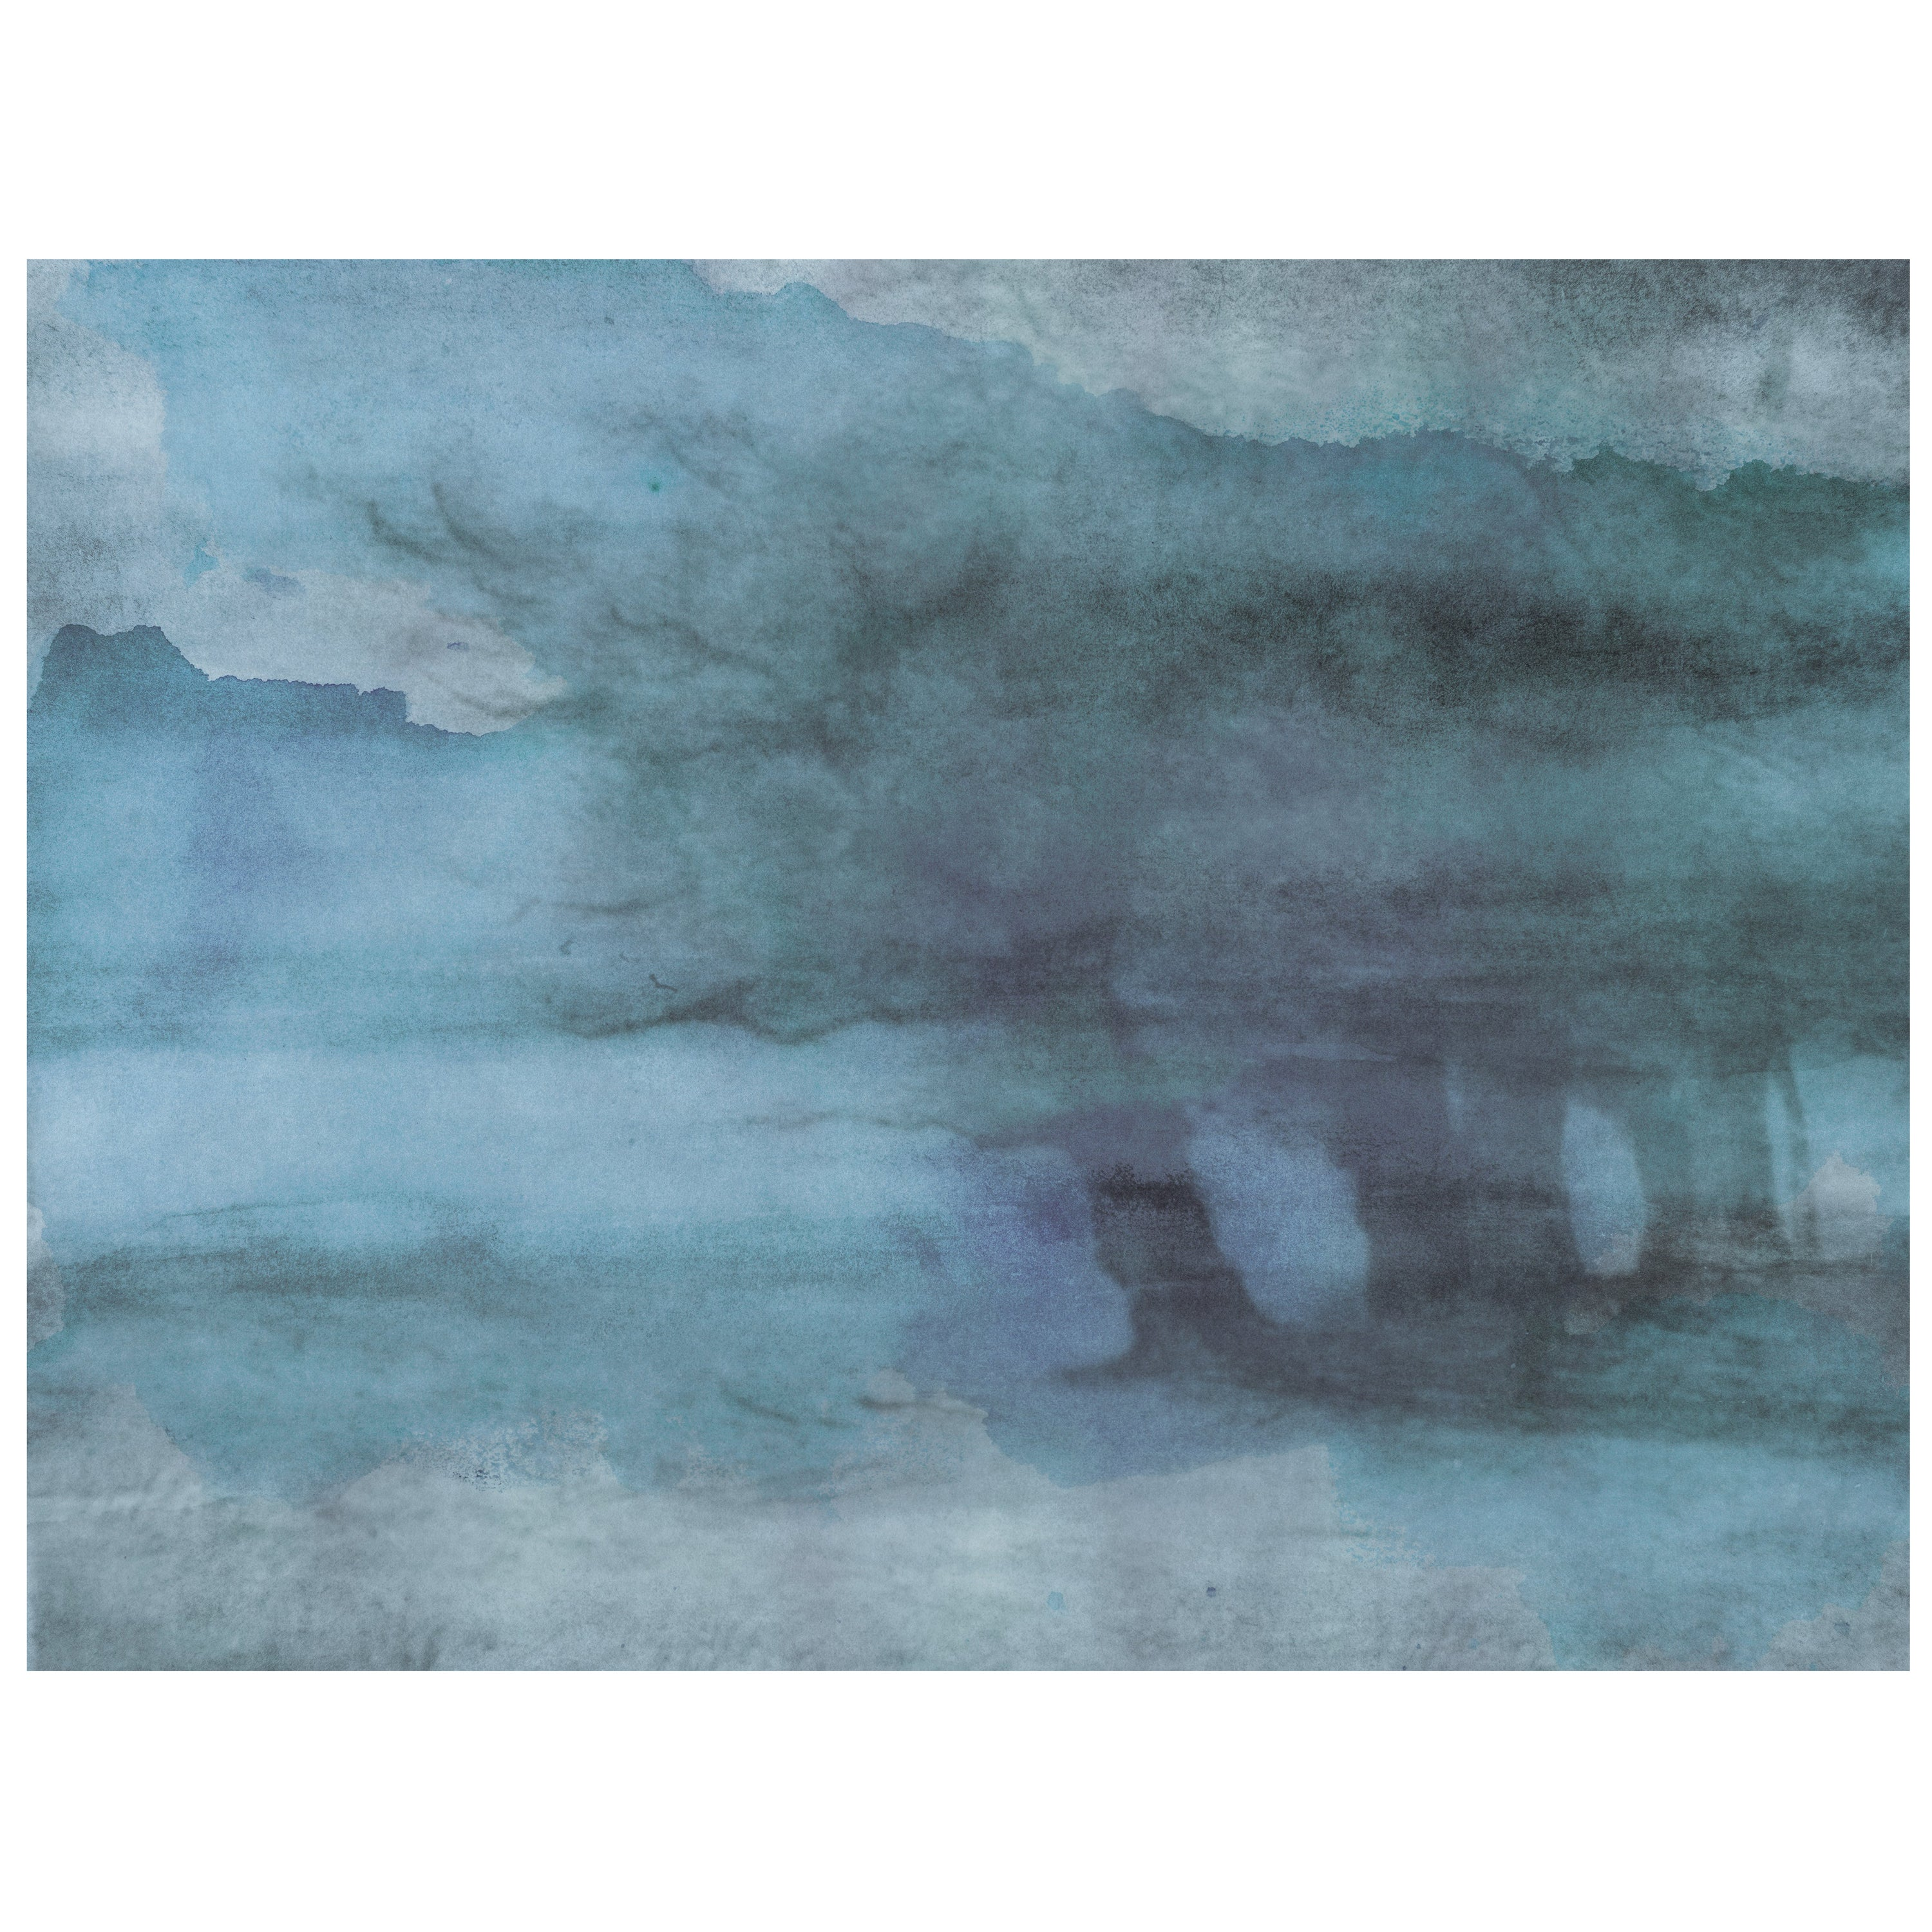 Brume du Tibet - custom mural wallpaper (faded blue)